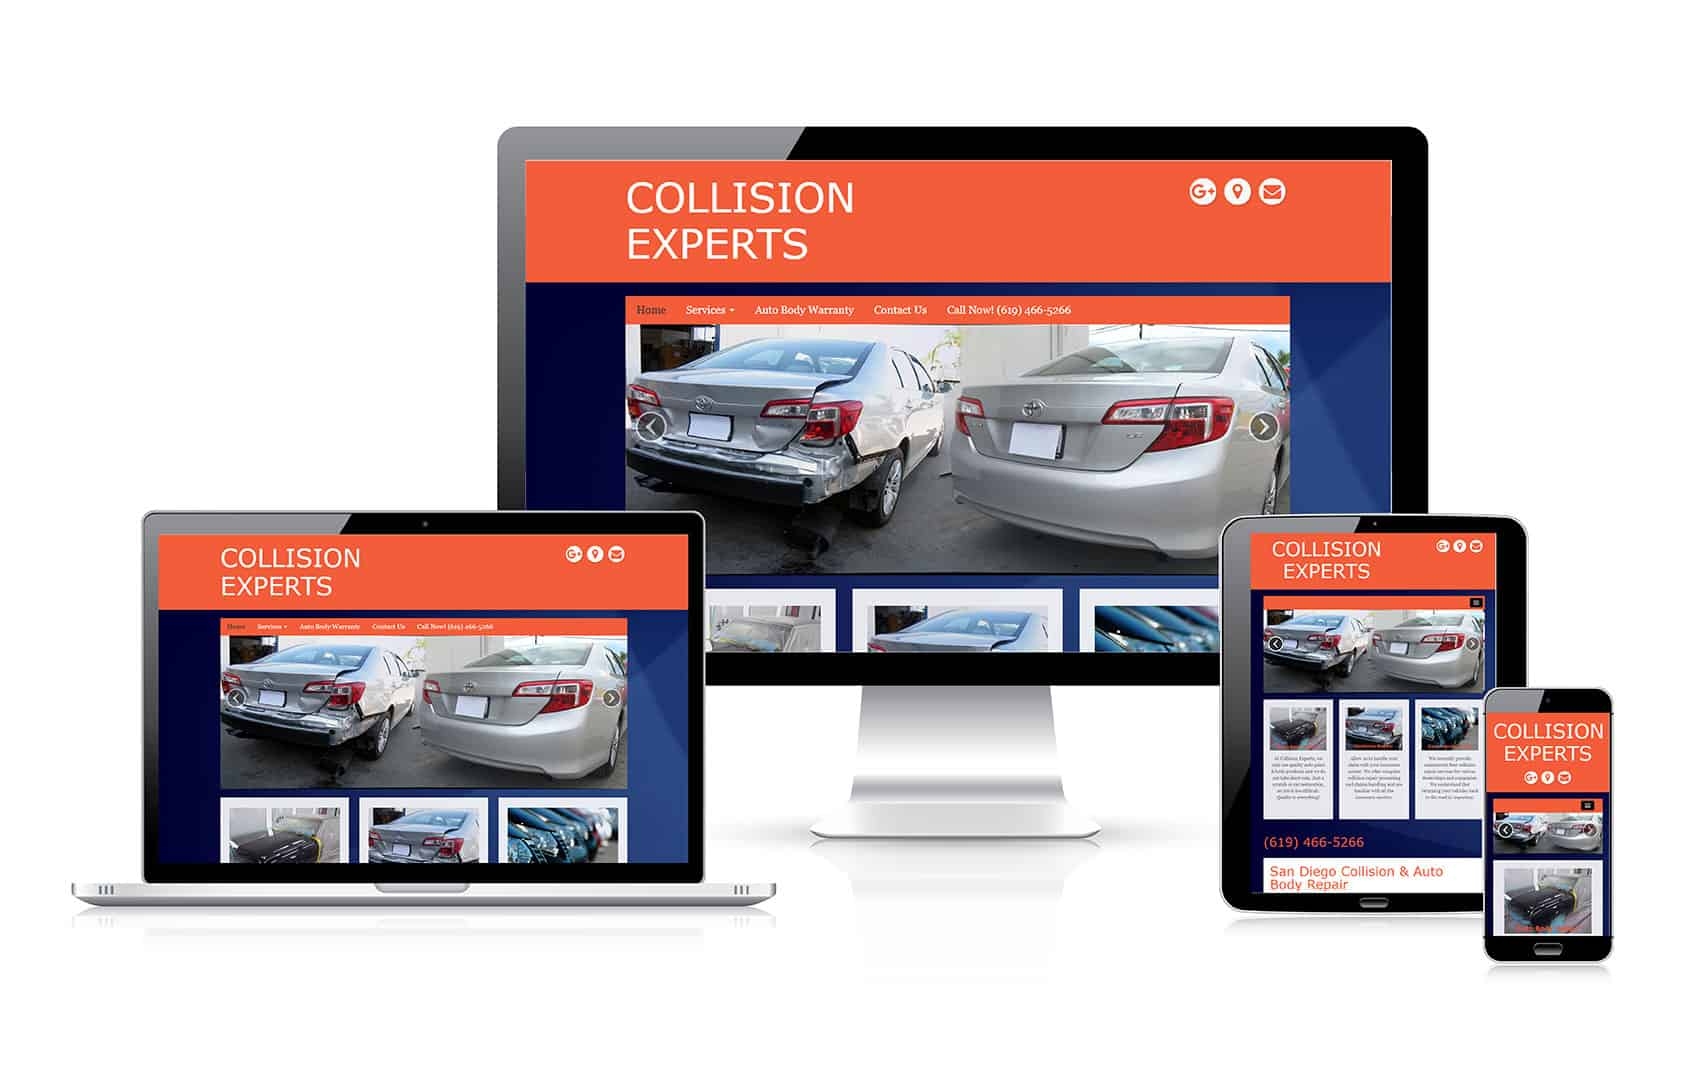 collision-experts-website-image